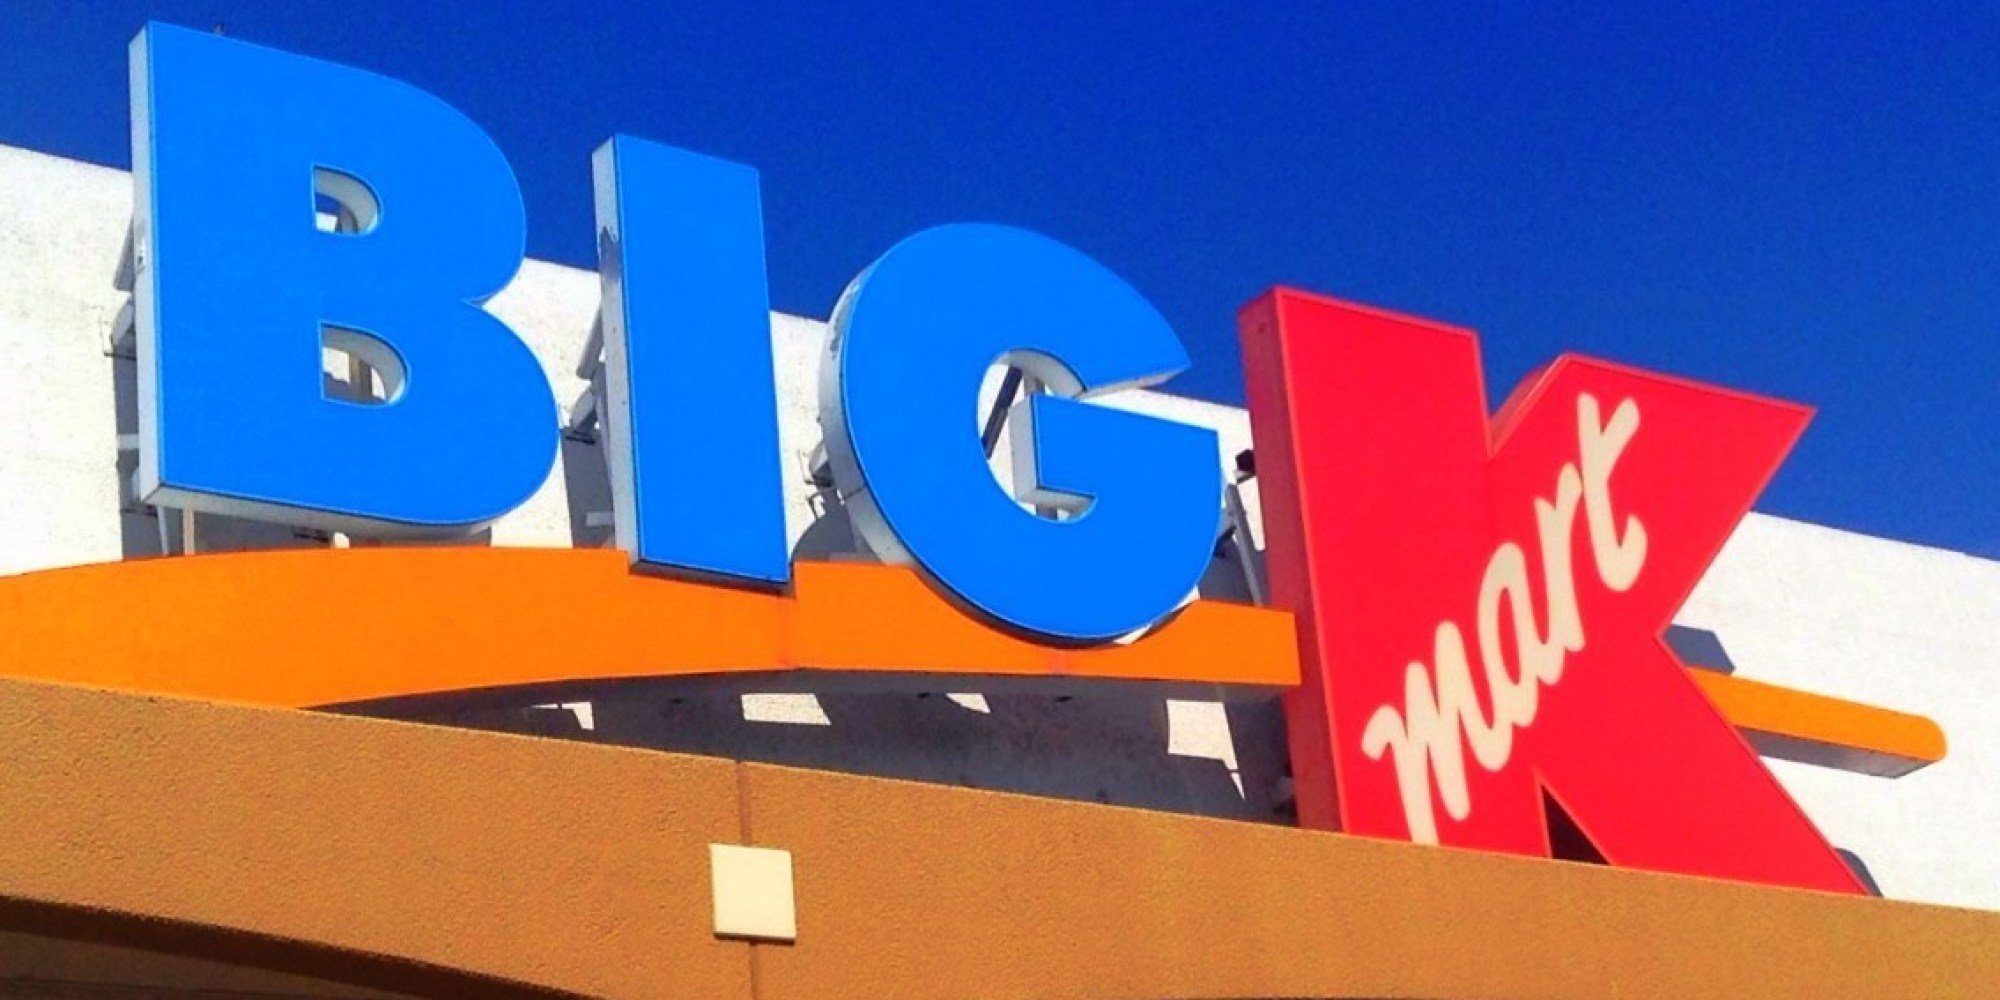 Kmart Apologizes For Layaway Debacle, Says Some Cancellations Were ...